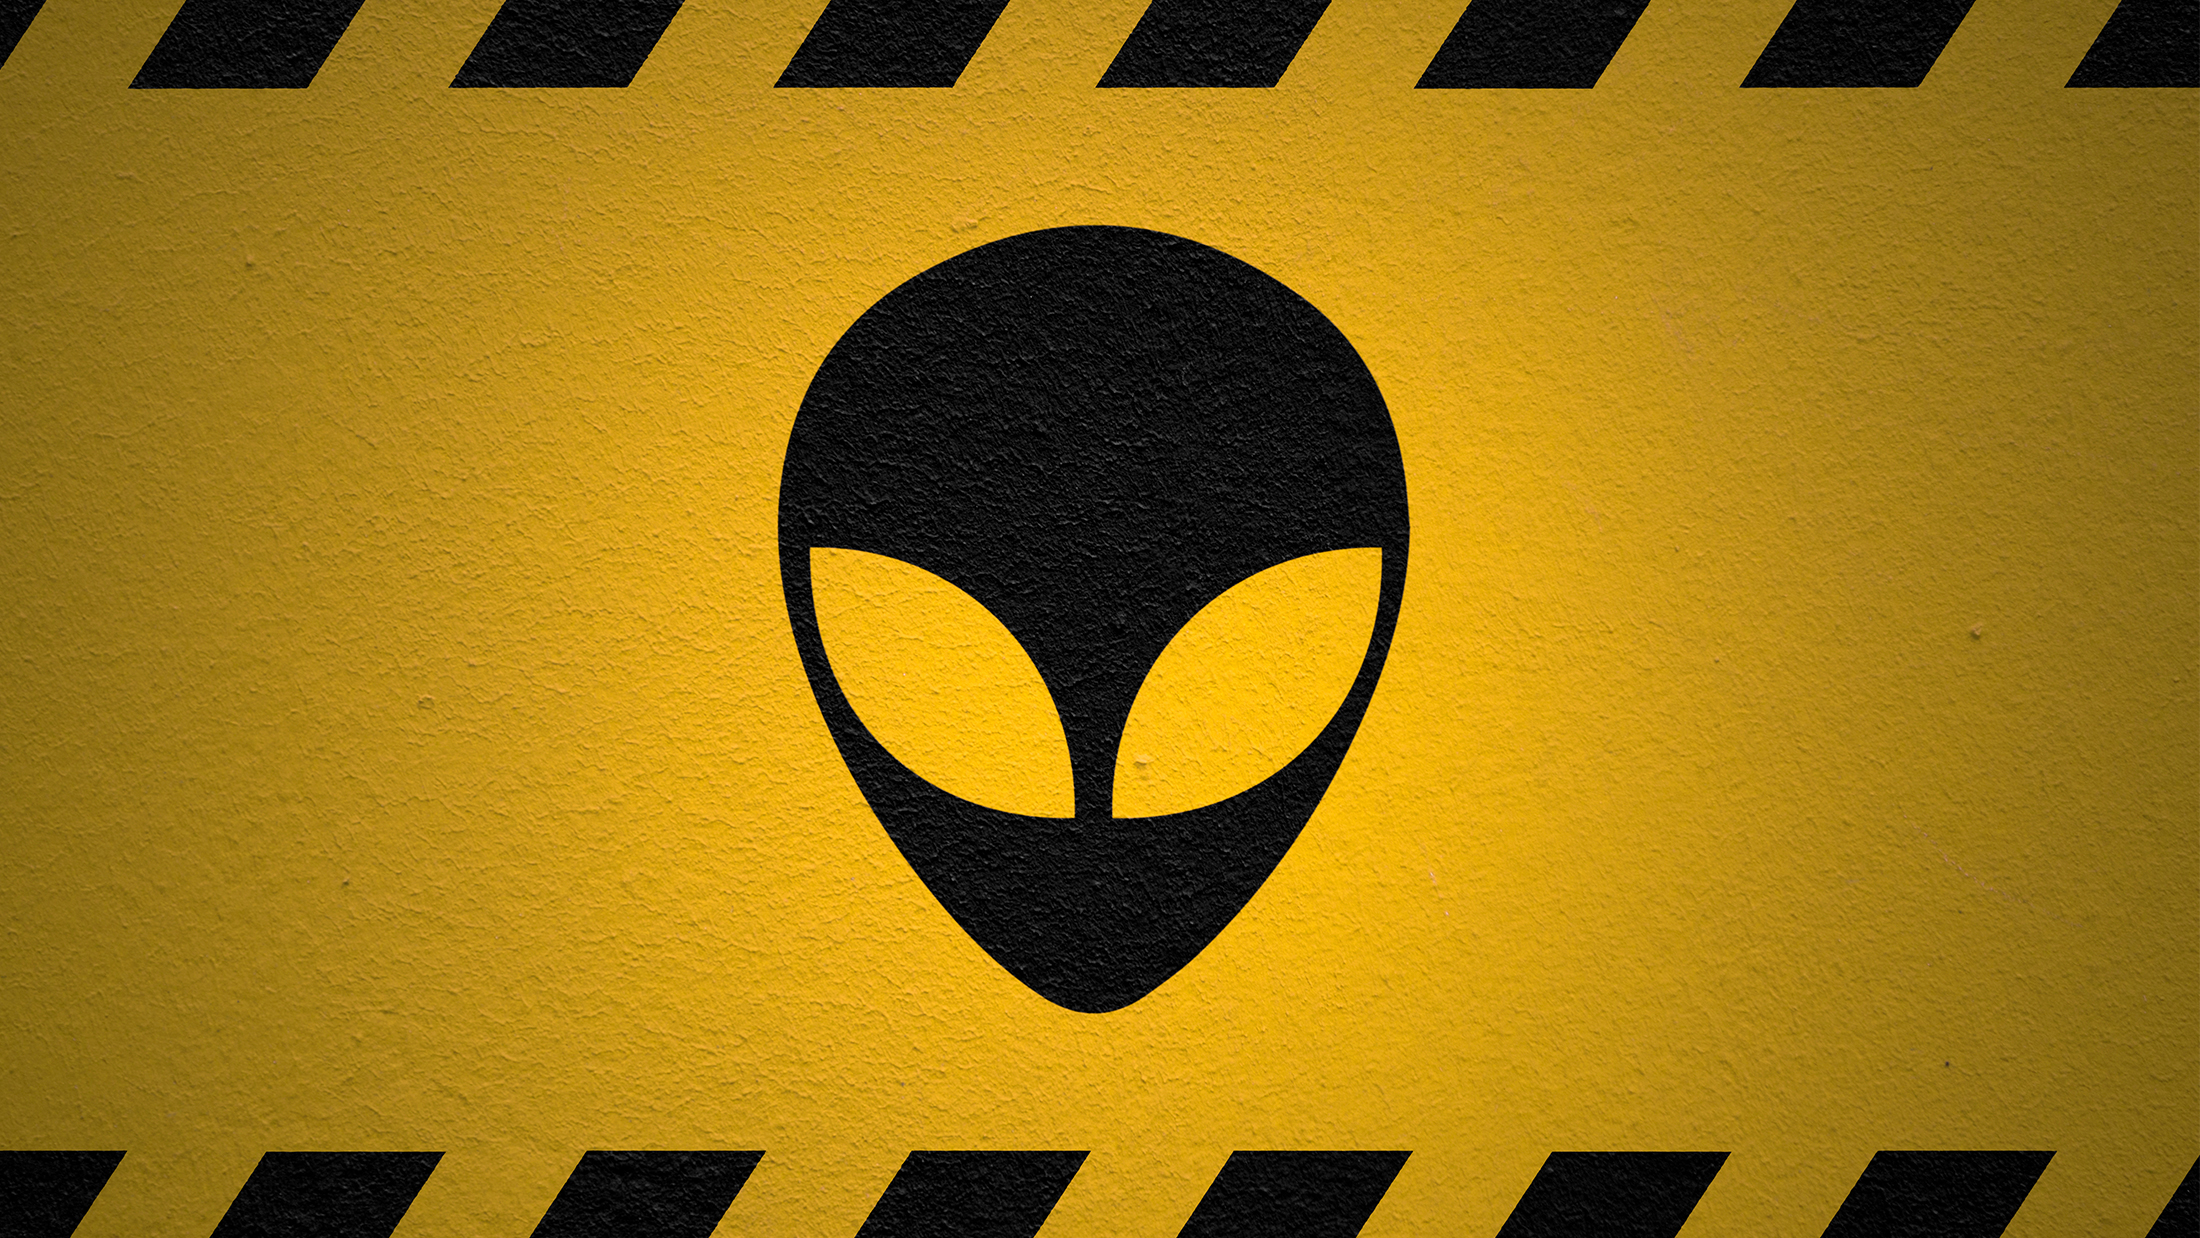 Area 51: The Raid, The Jokes, The Theories, and The Data